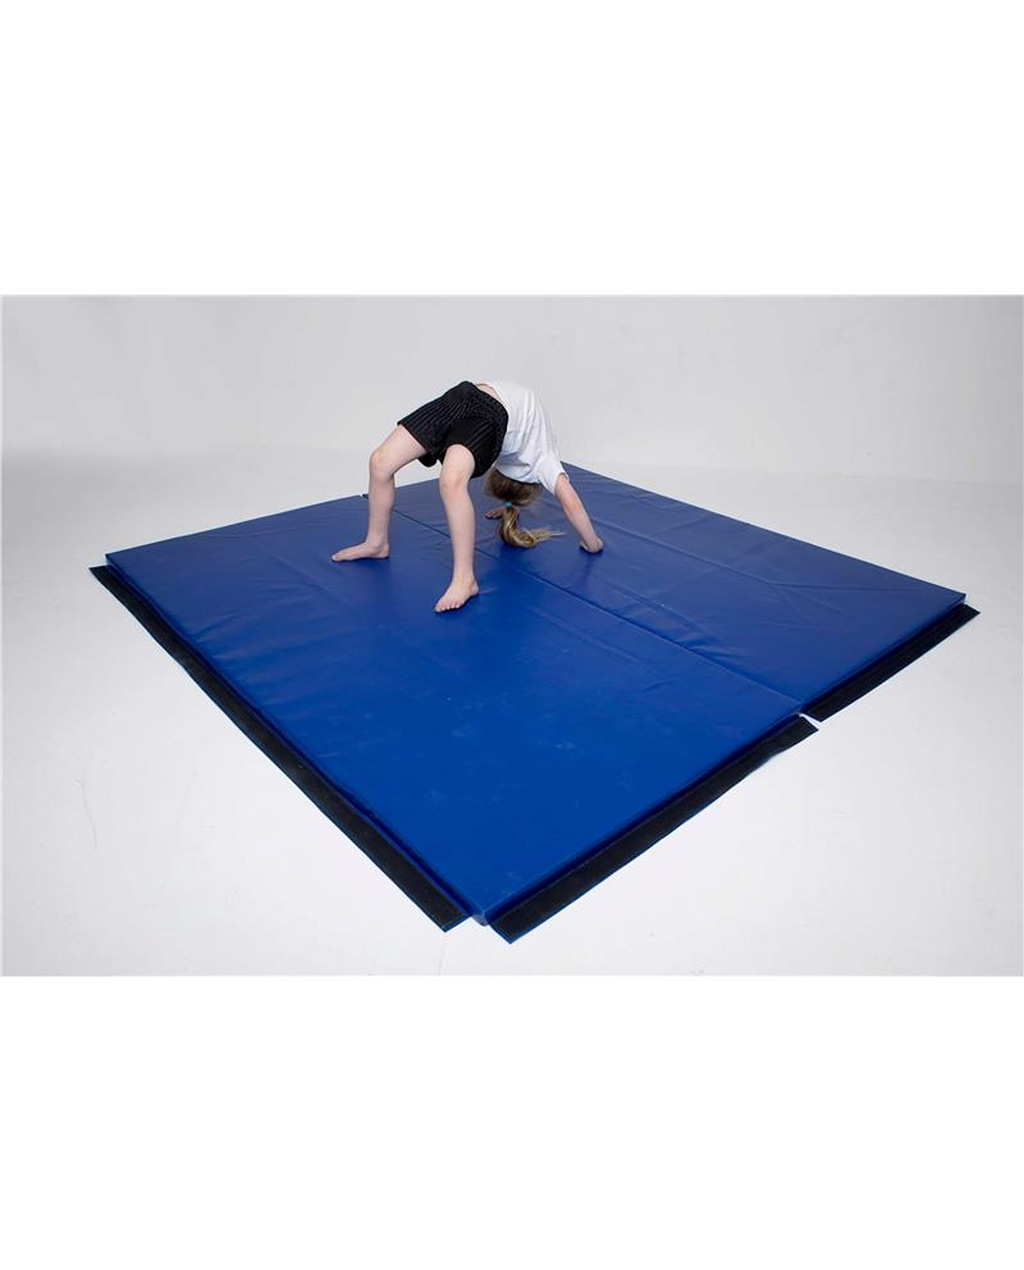 HEAVY DUTY LIGHTWEIGHT MAT W/ VELCRO LINK 2m x 1m x 30mm